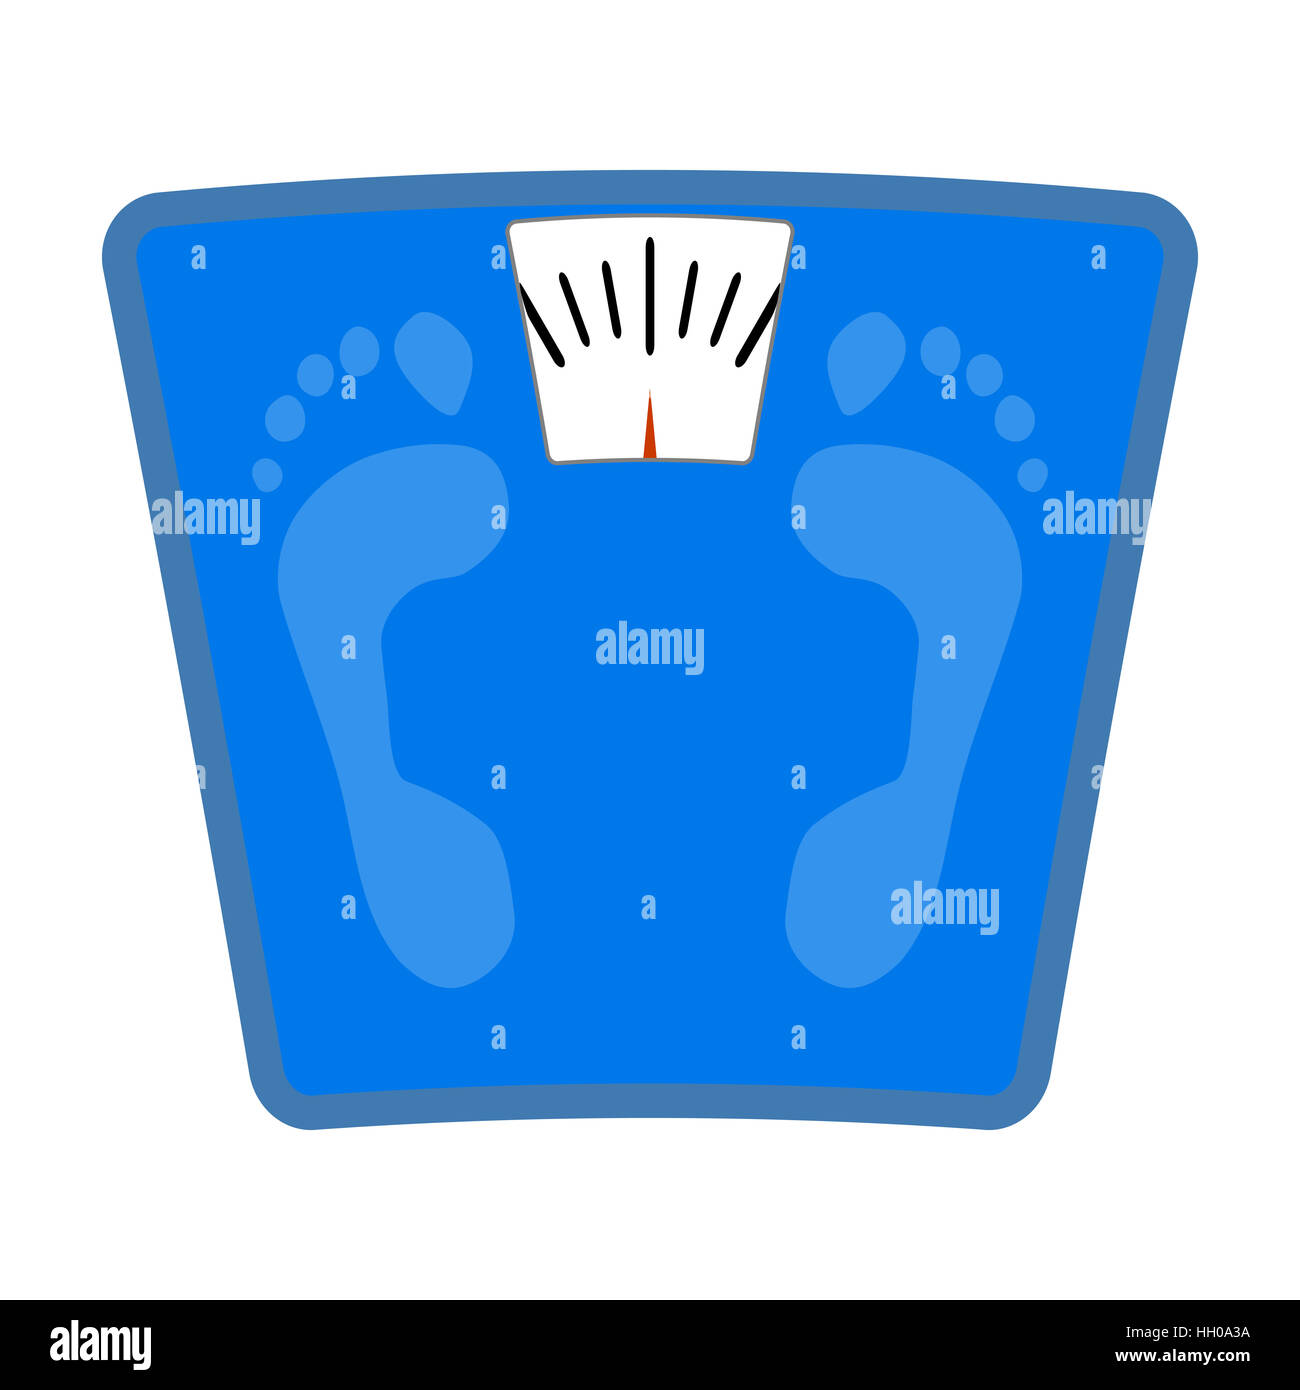 Scale icon flat. Weight loss and balance scale, bathroom ...